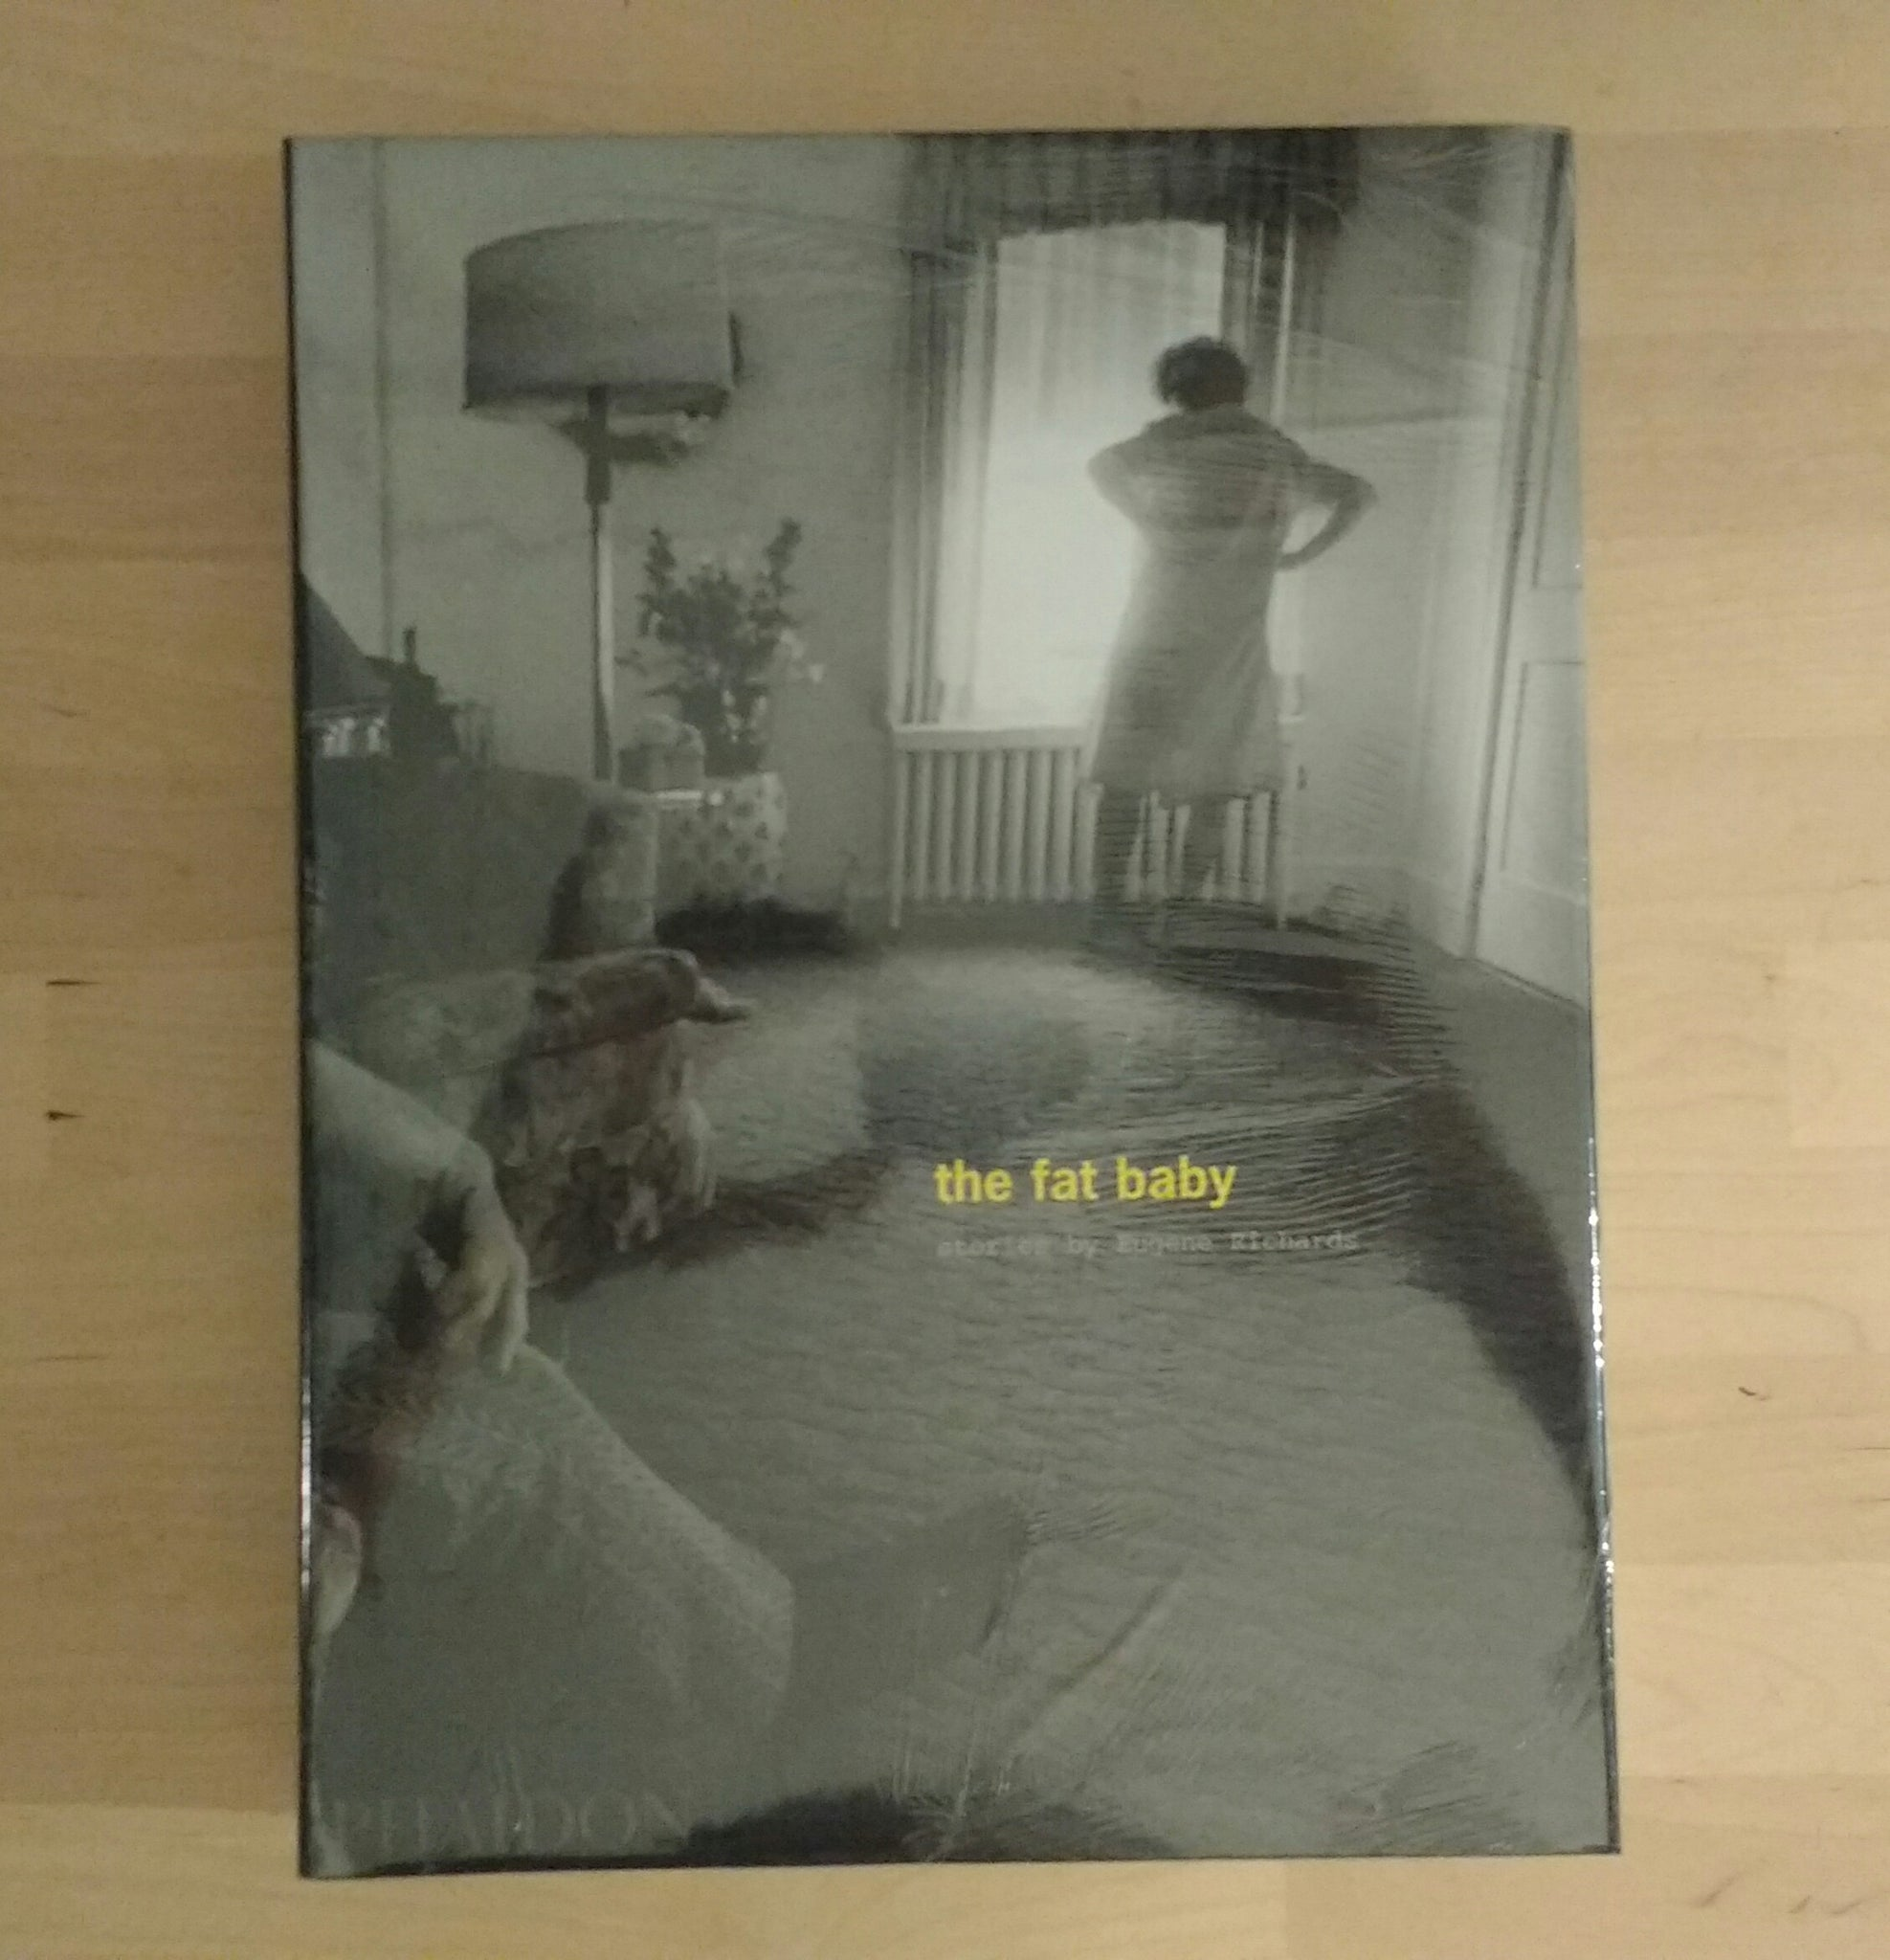 The fat baby | Eugene Richards | Phaidon